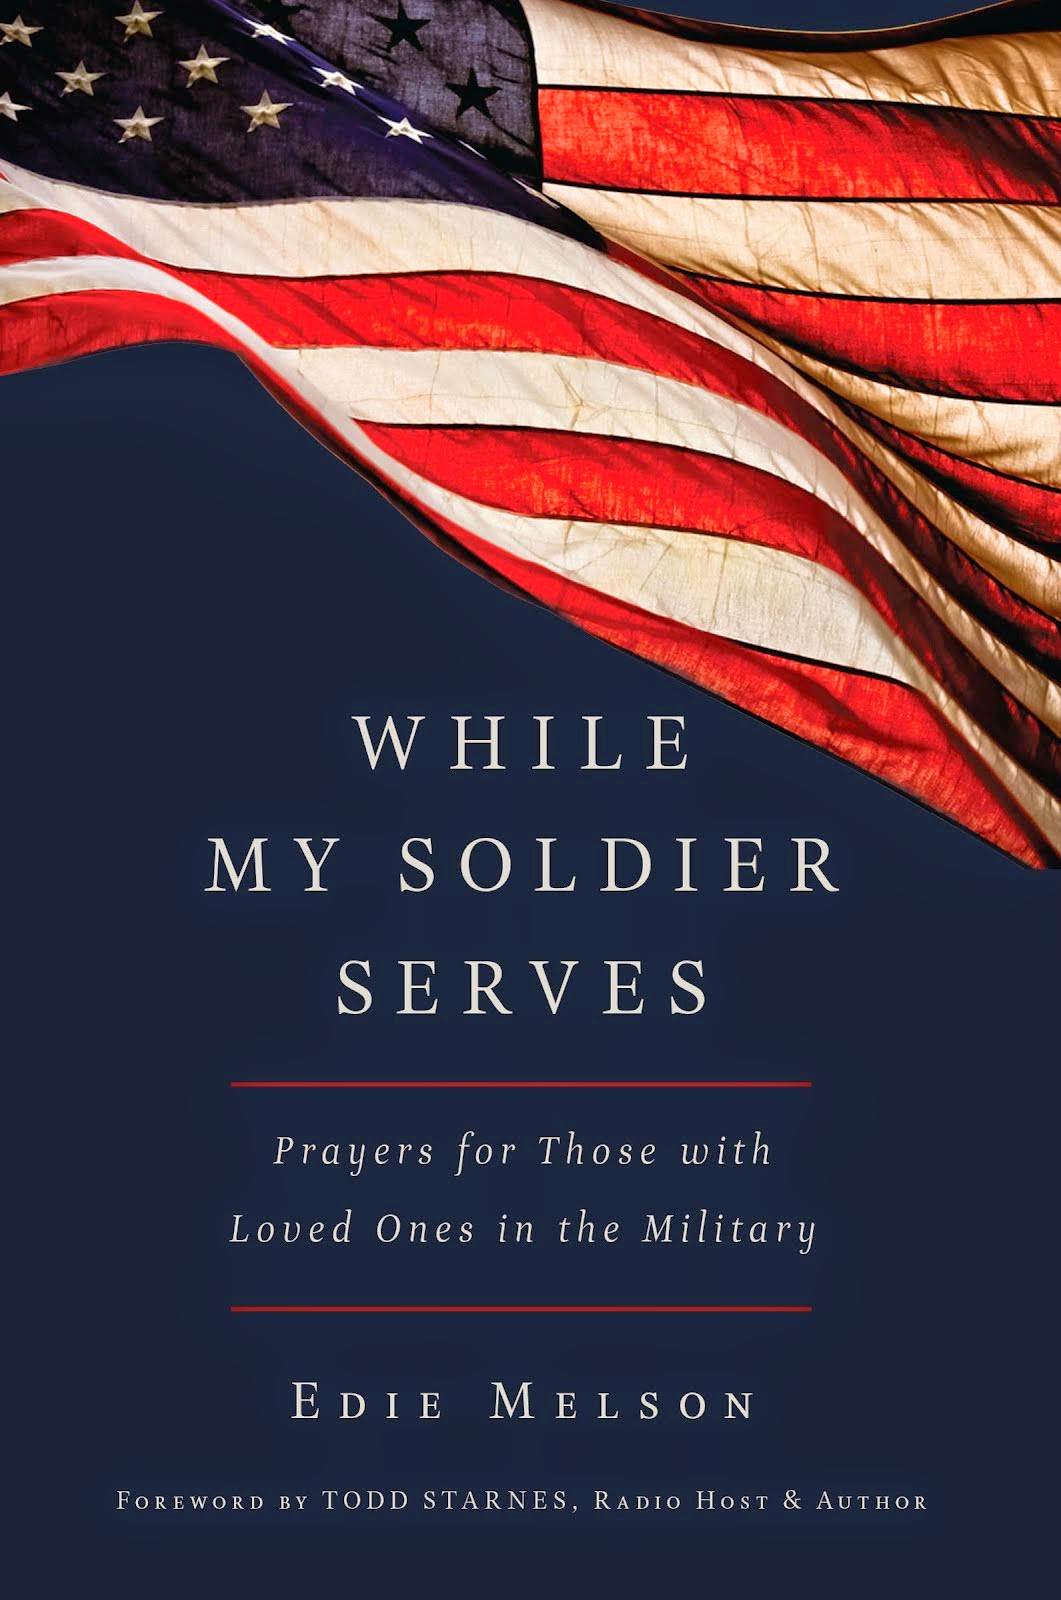 Edie's Newest Book for Military Families